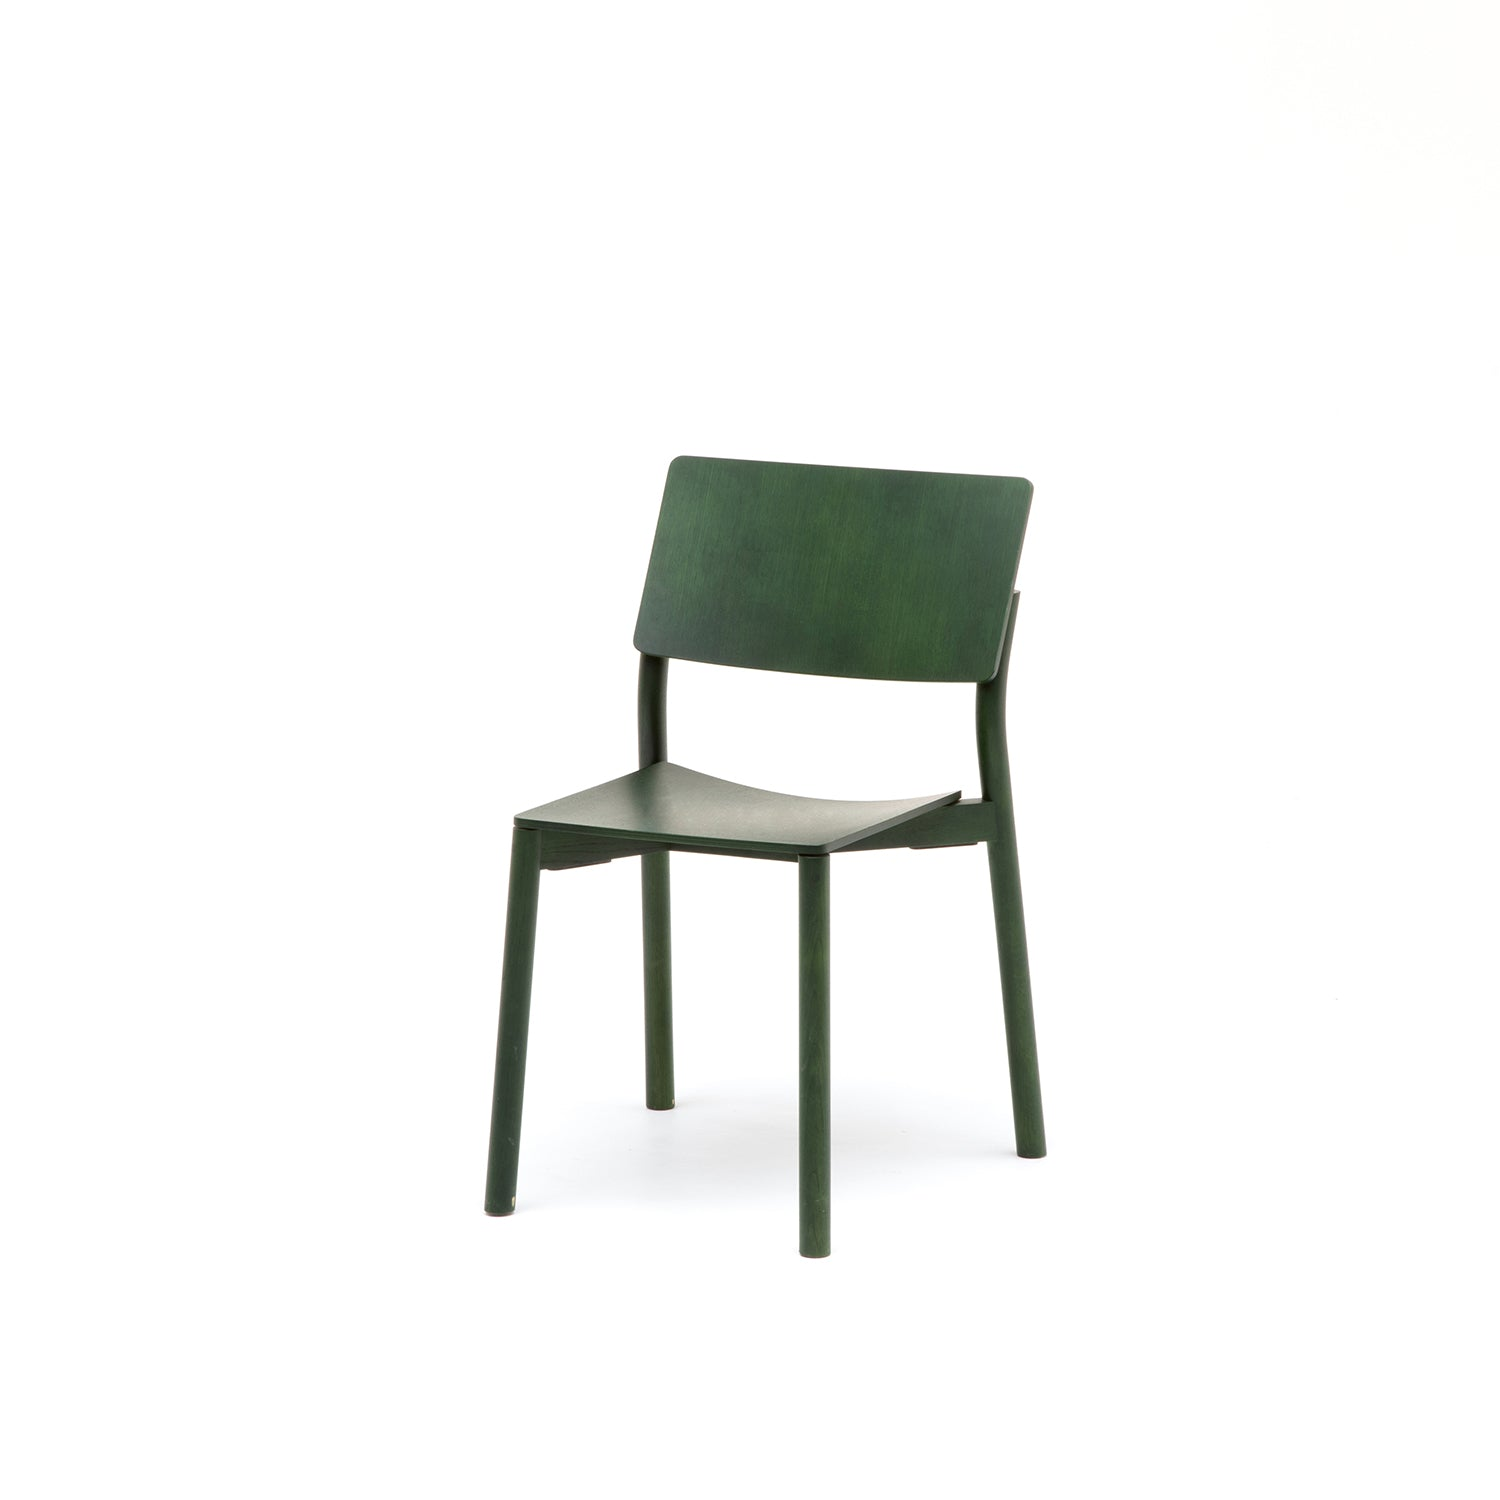 Panorama Chair: Moss Green Oak